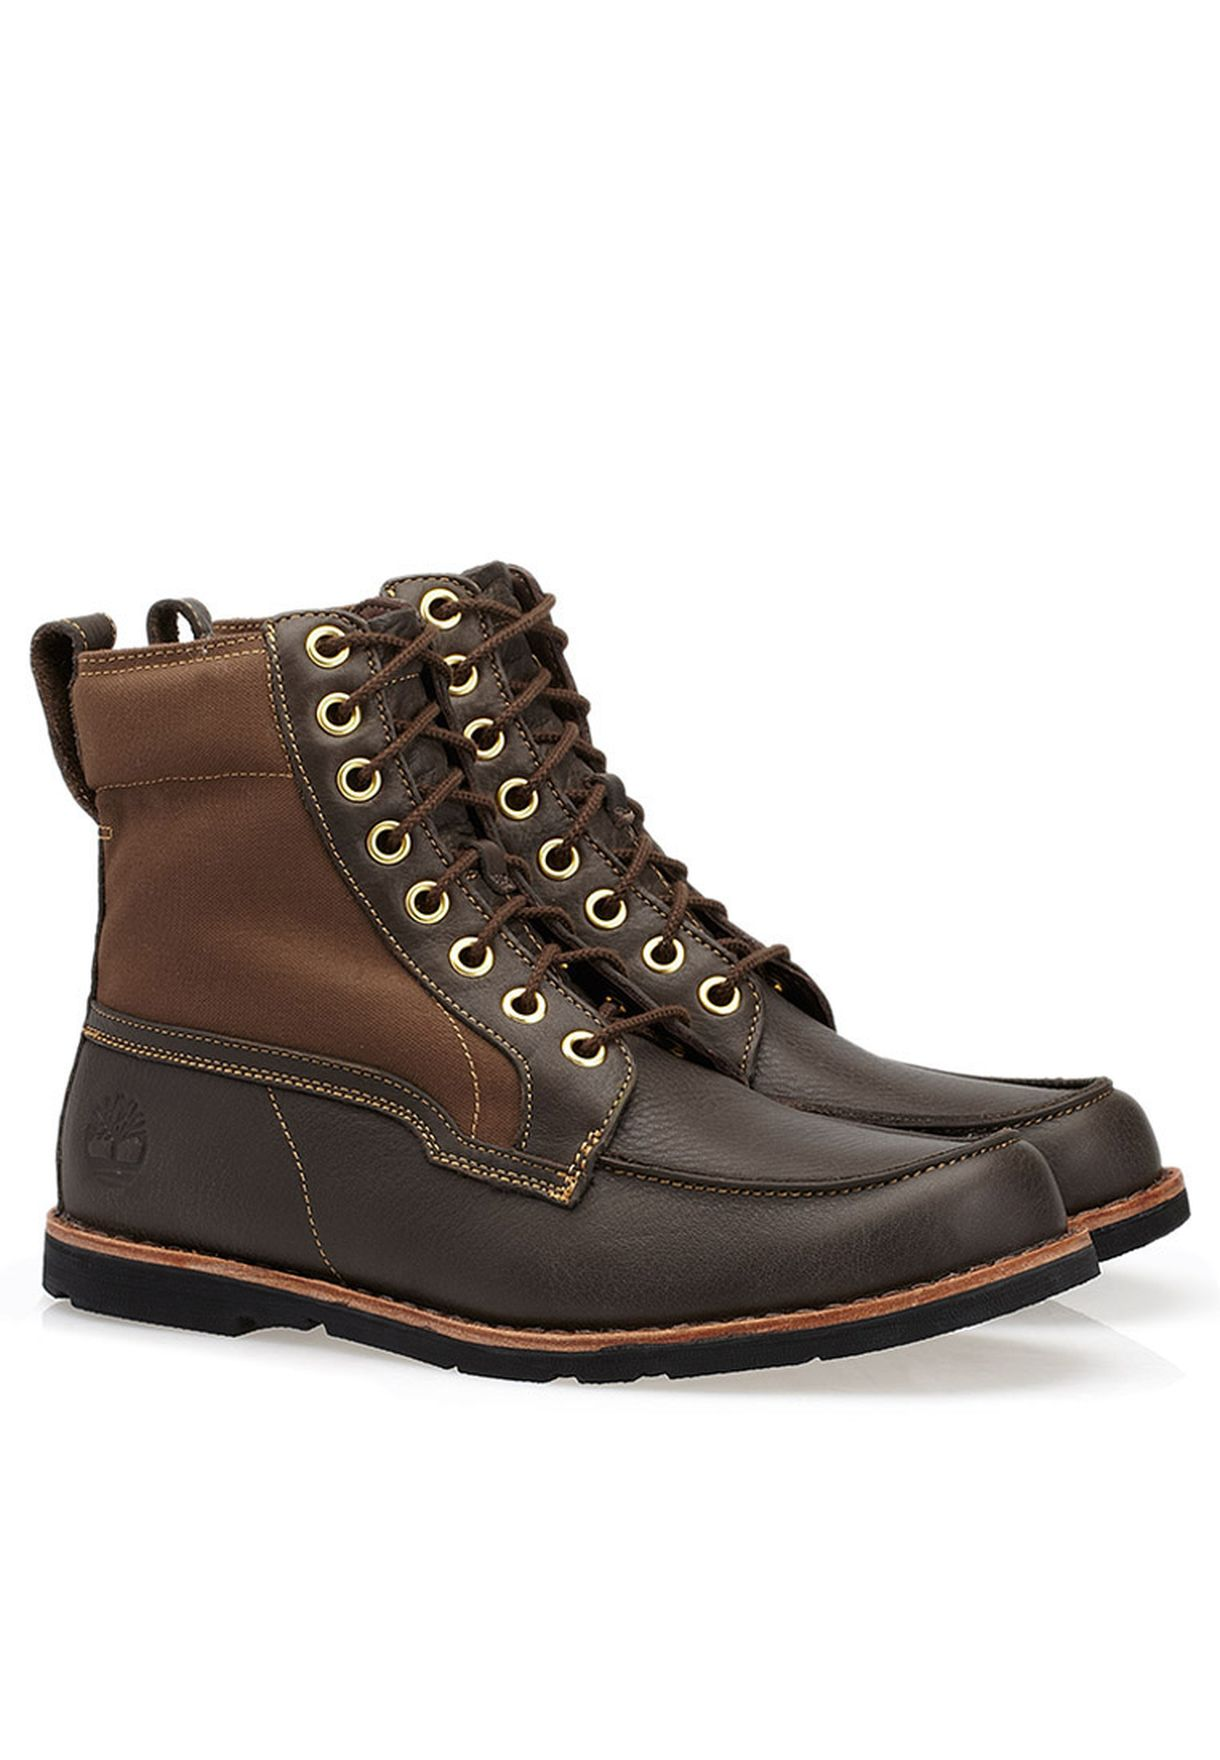 45a83ea8ac Shop Timberland browns EK 2.0 Rugged FTM Boots for Men in Kuwait ...